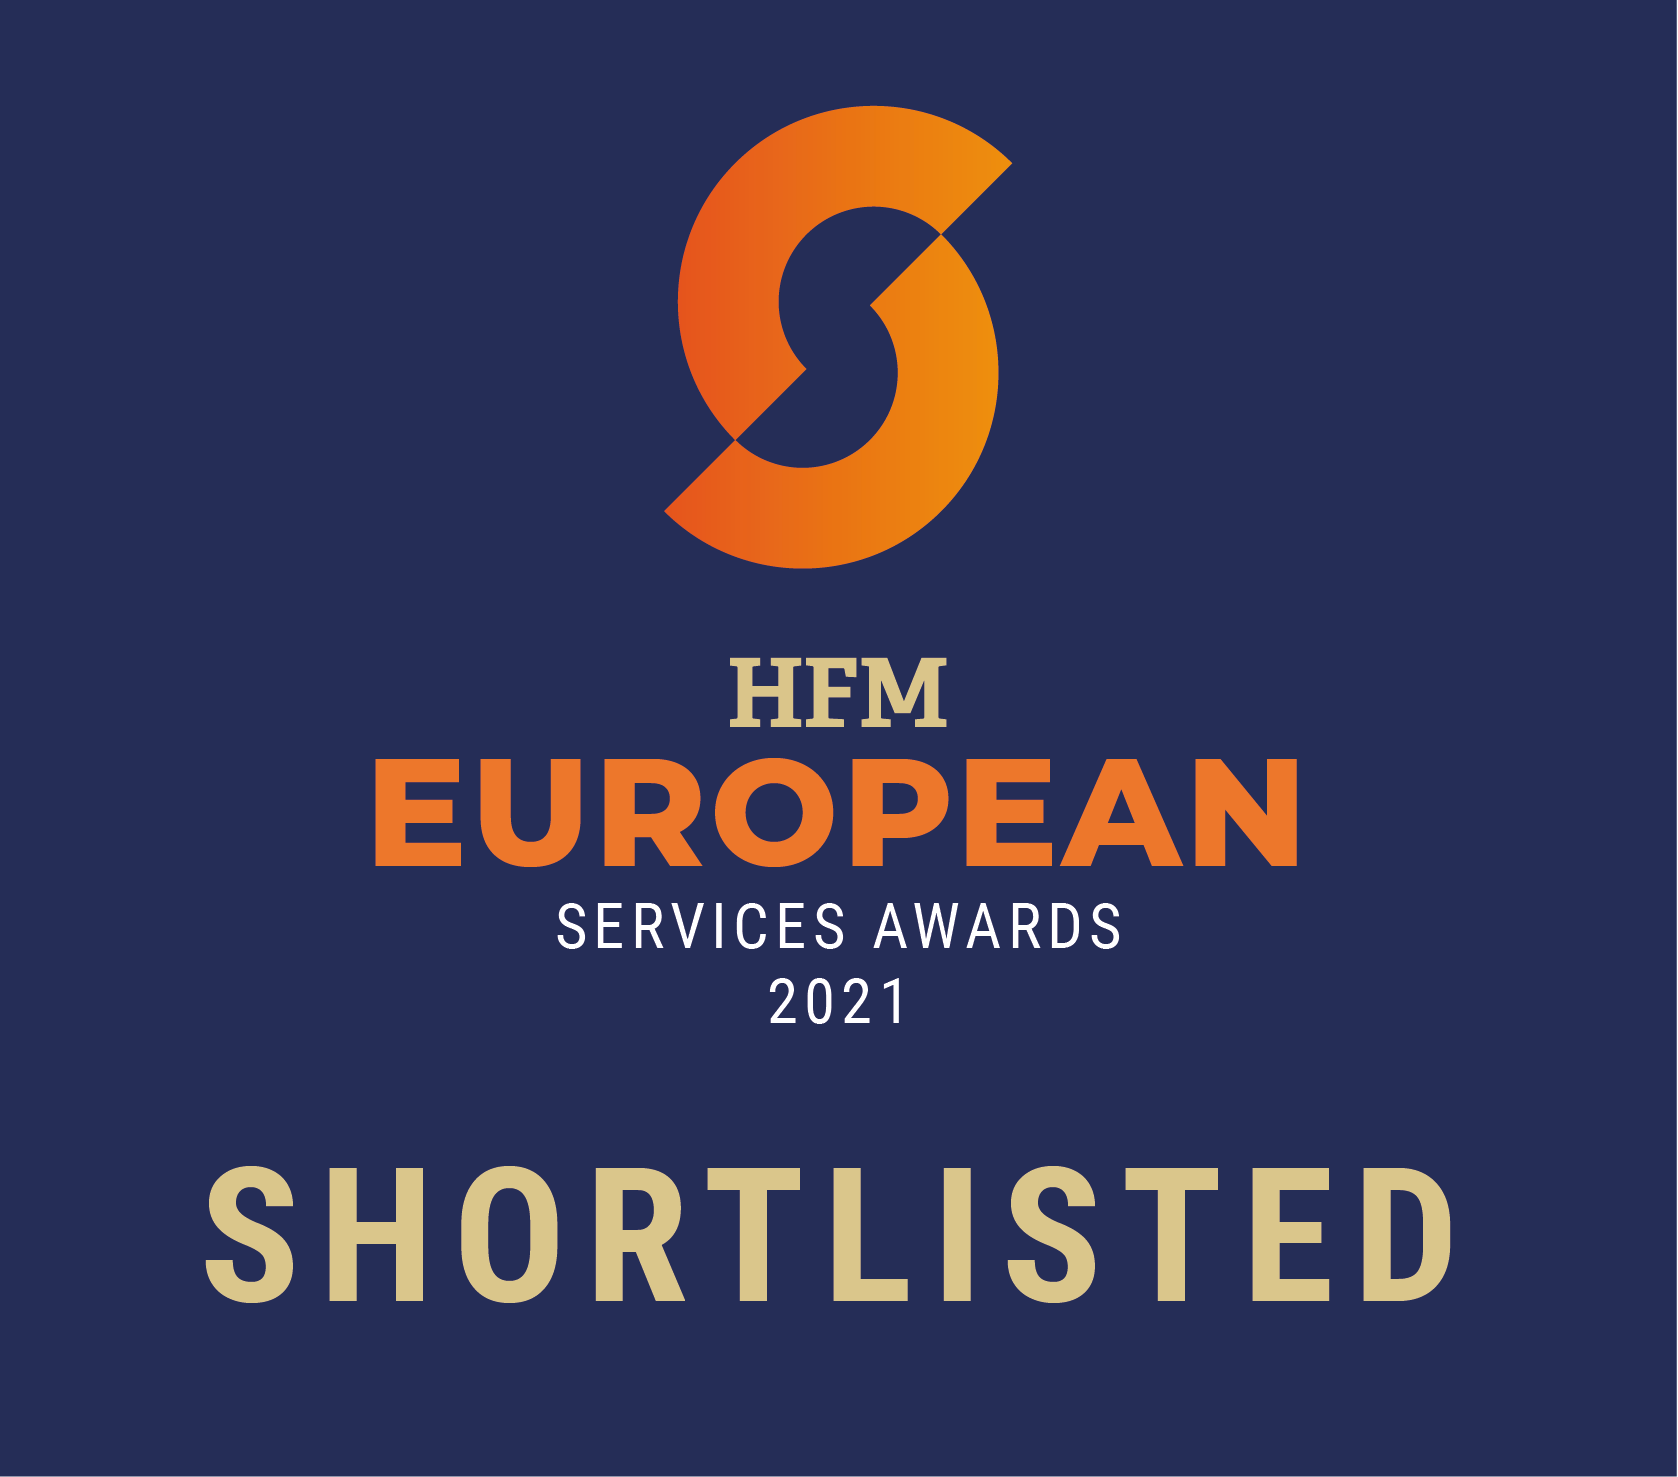 HFM European Services Awards 2021